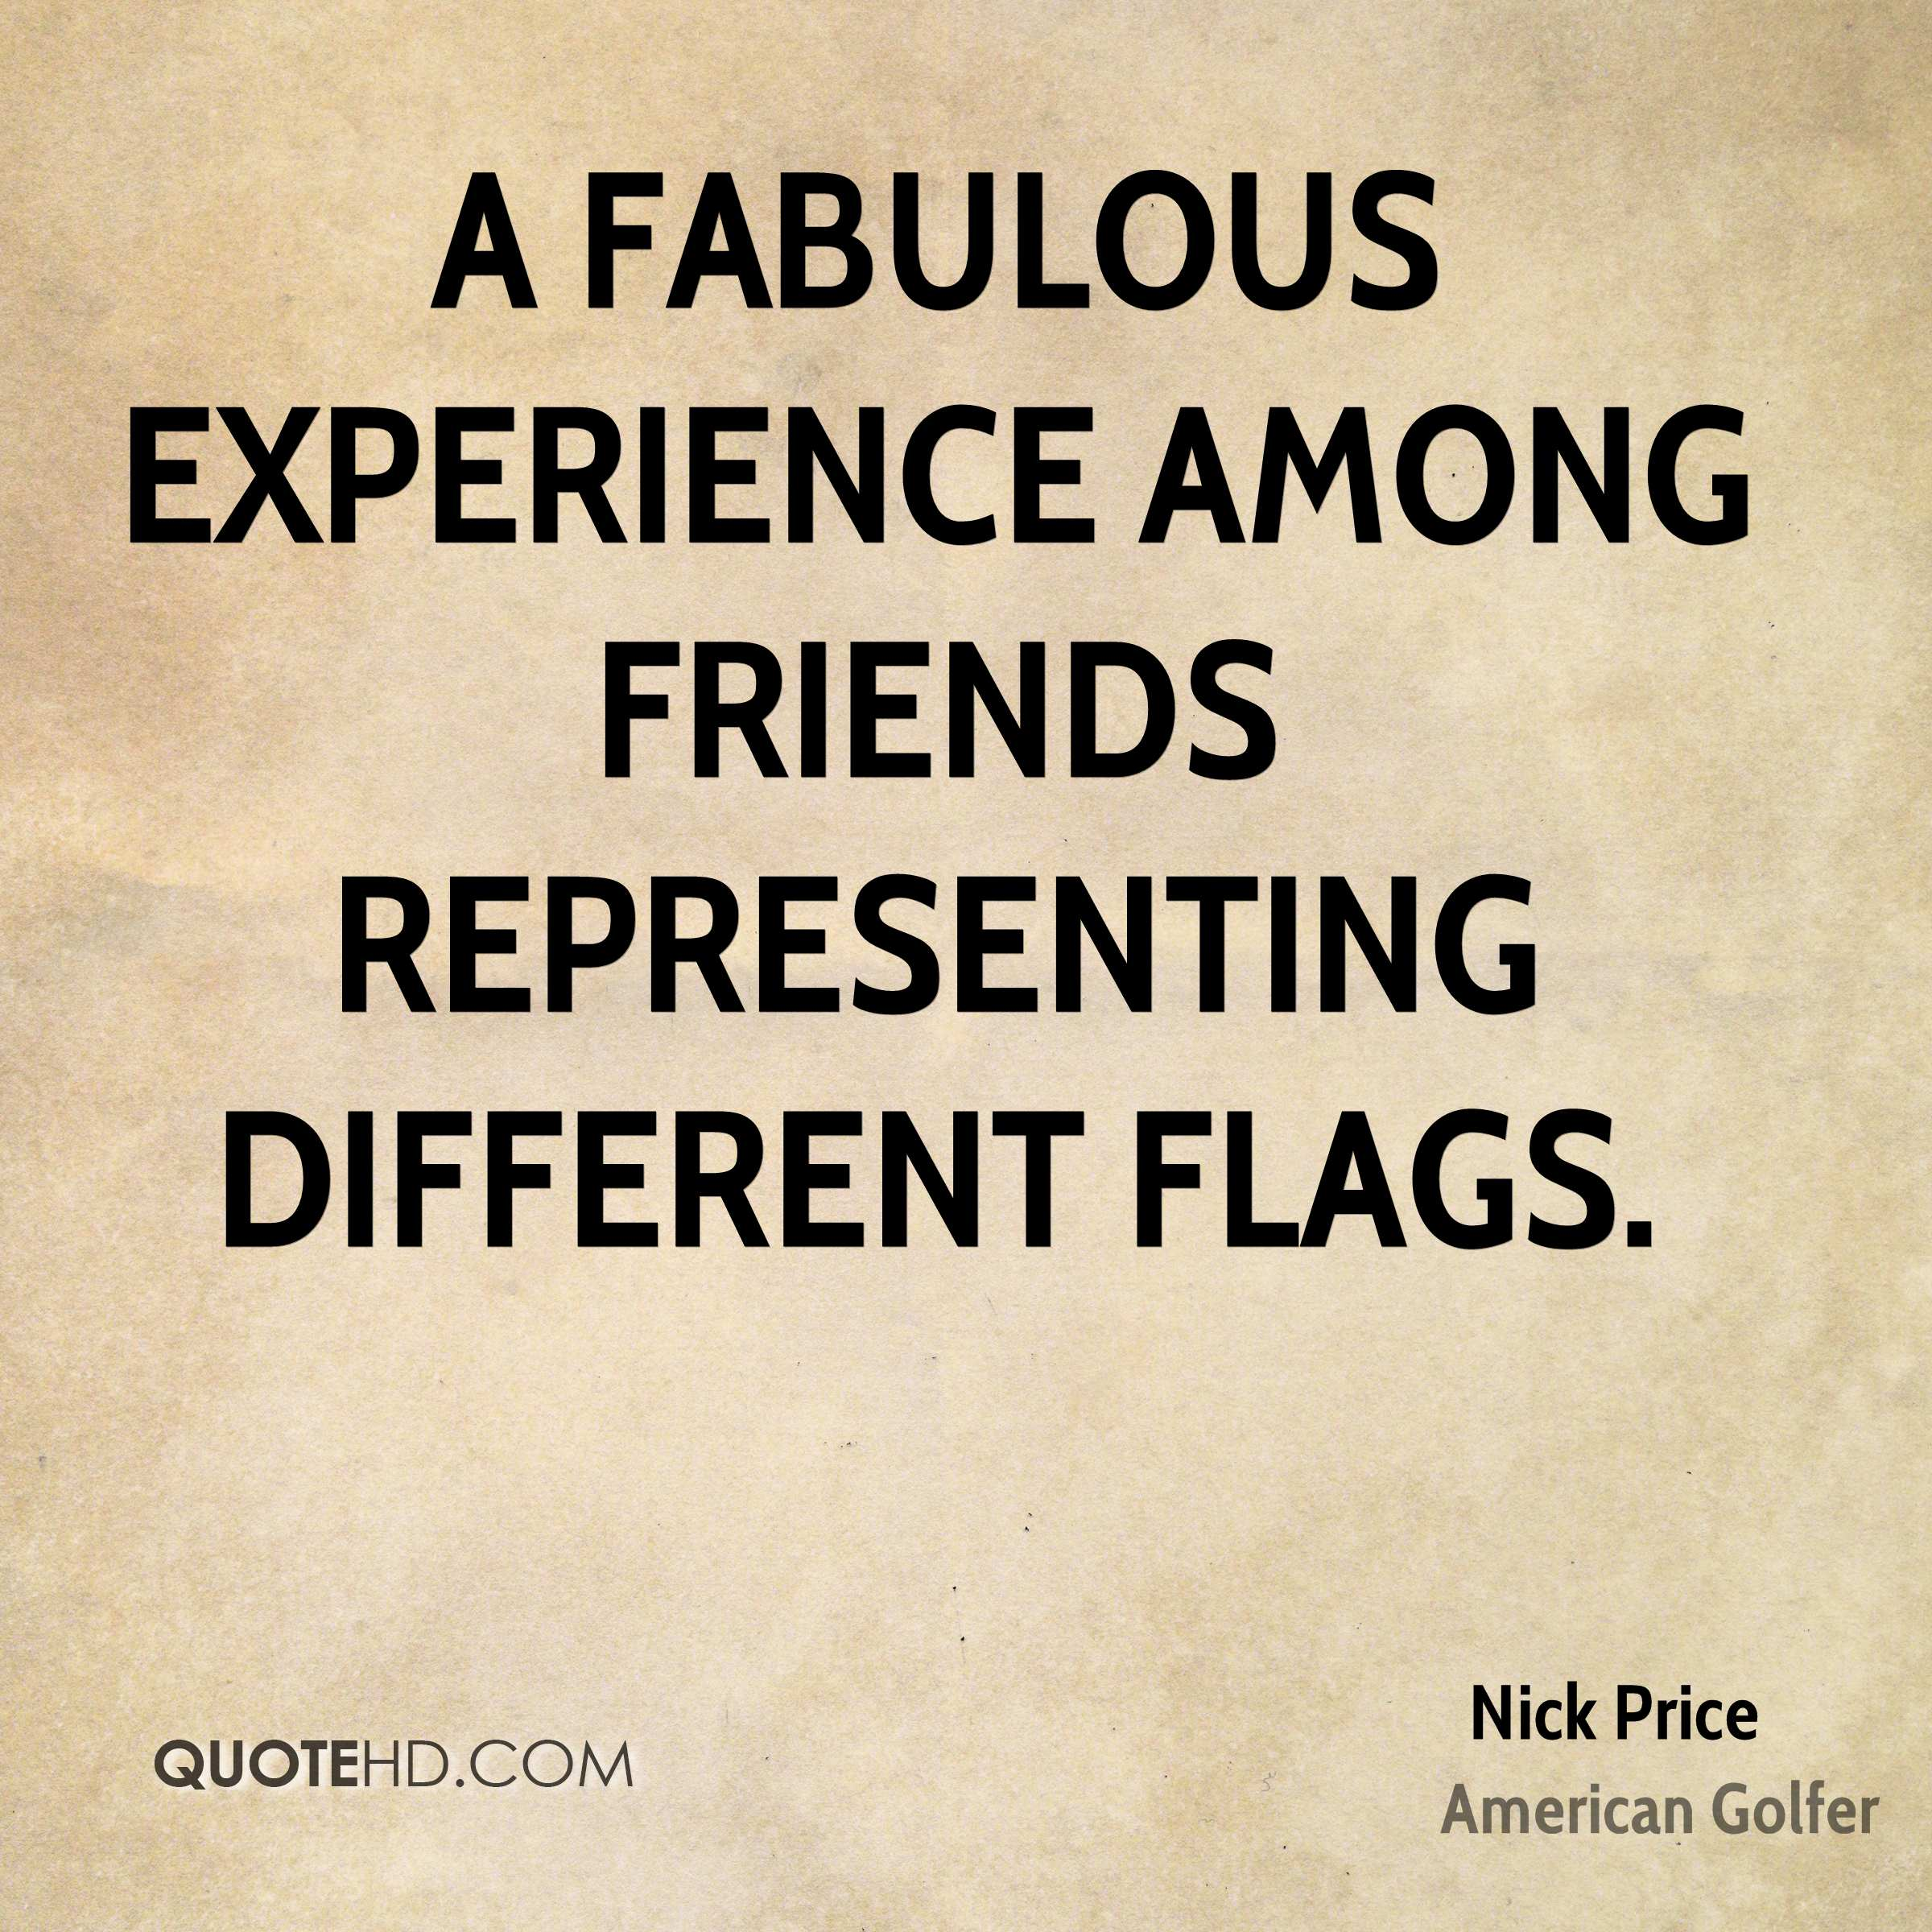 A fabulous experience among friends representing different flags.